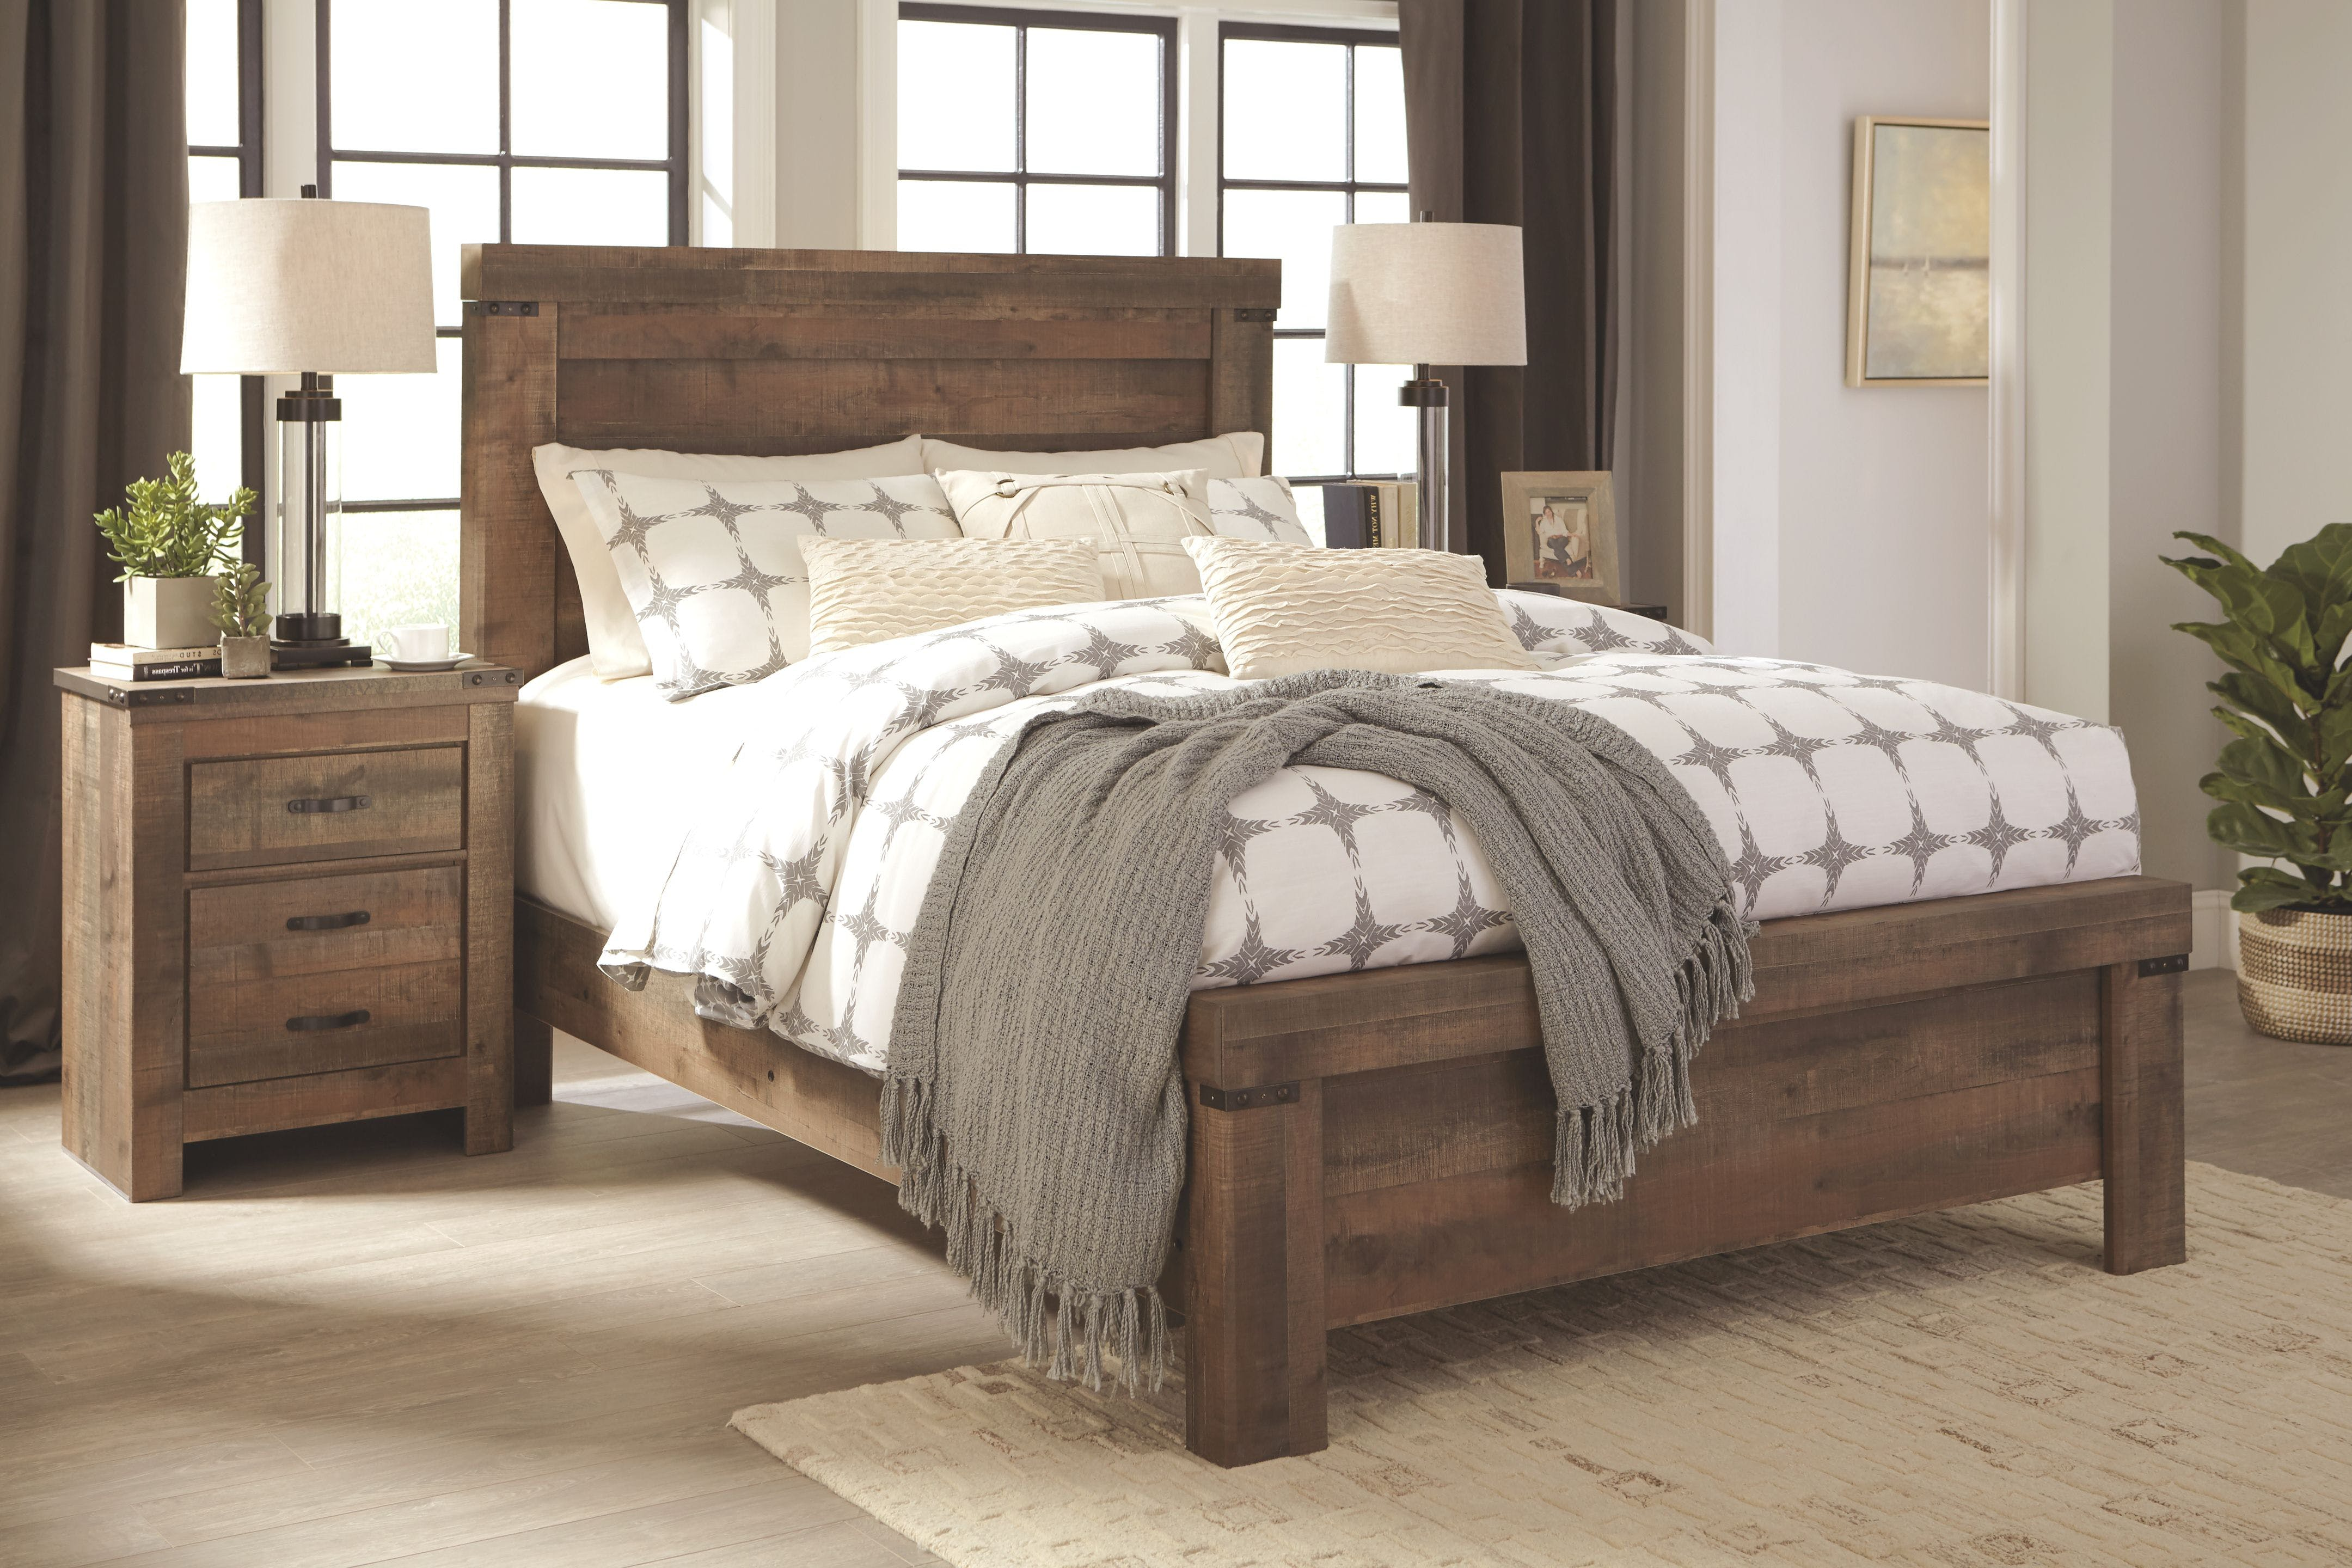 Signature Design By Ashley Bedroom Trinell Queen Panel Bed B446b48 Capital Discount Furniture